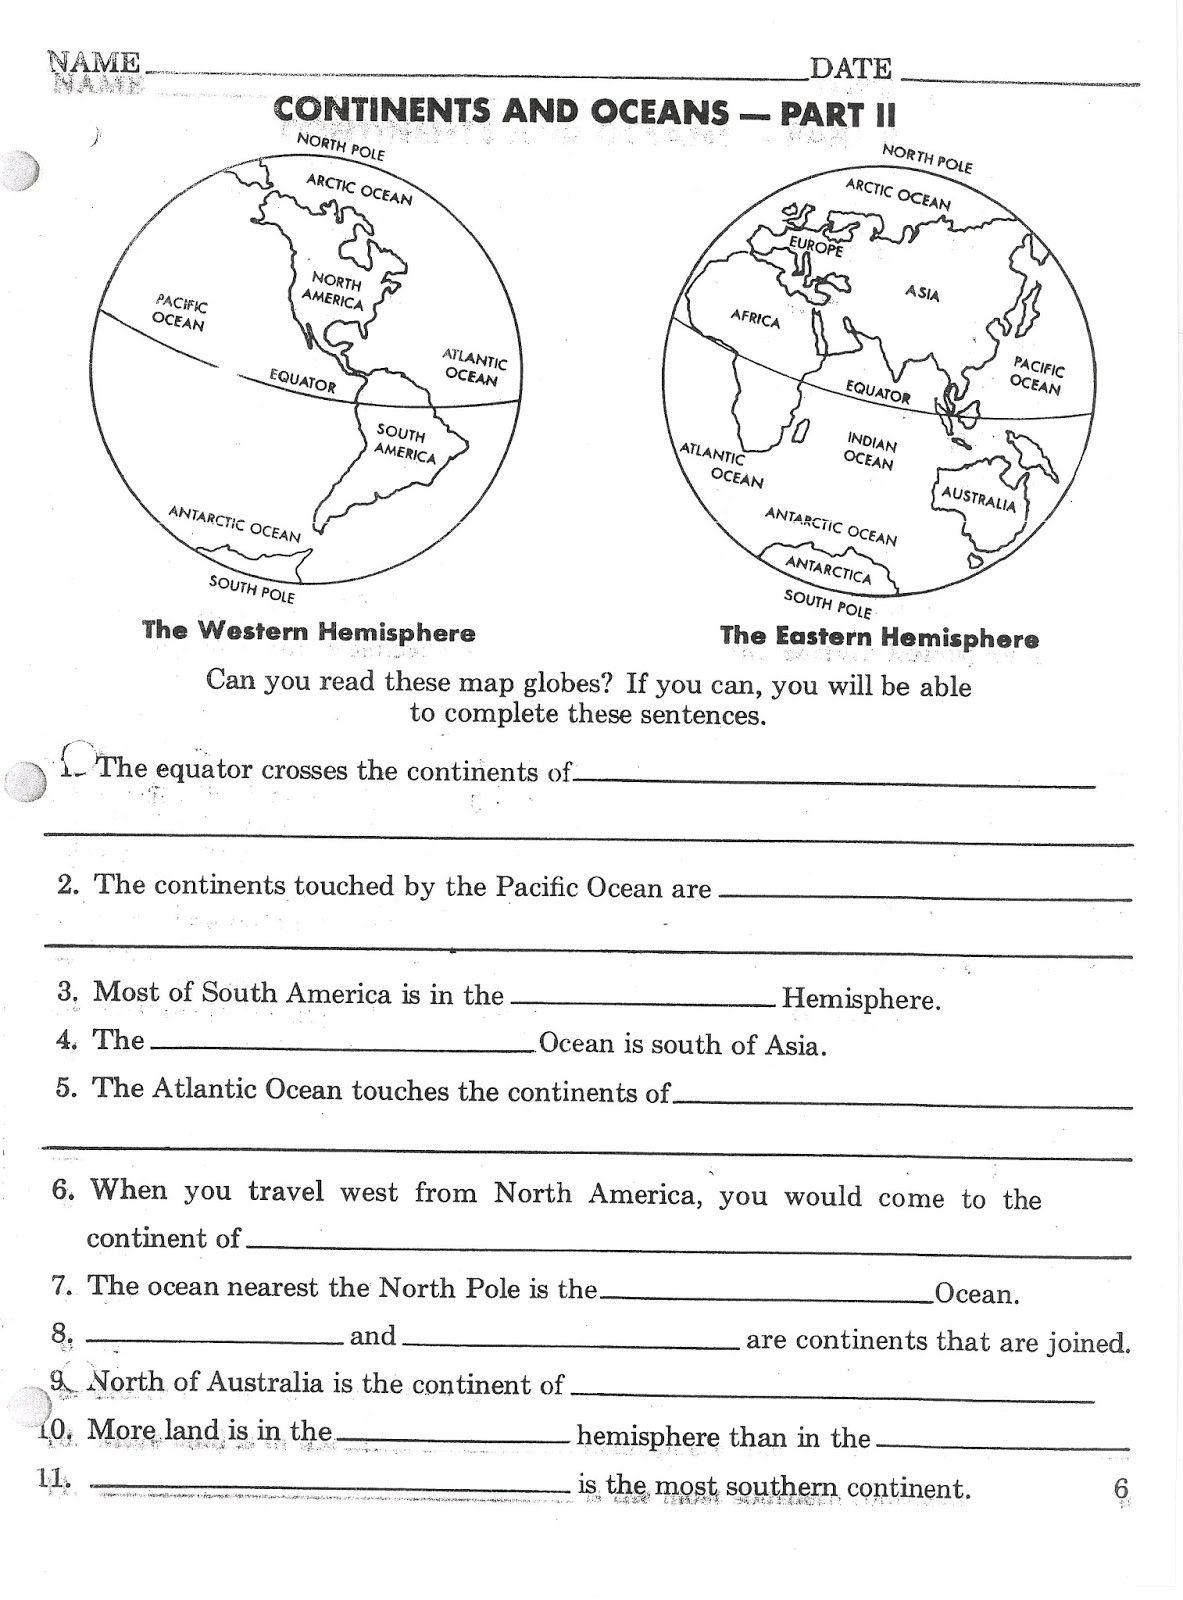 Continents And Oceans Worksheet Printable Continents And Oceans Printable Worksheets Super Teacher Worksheets